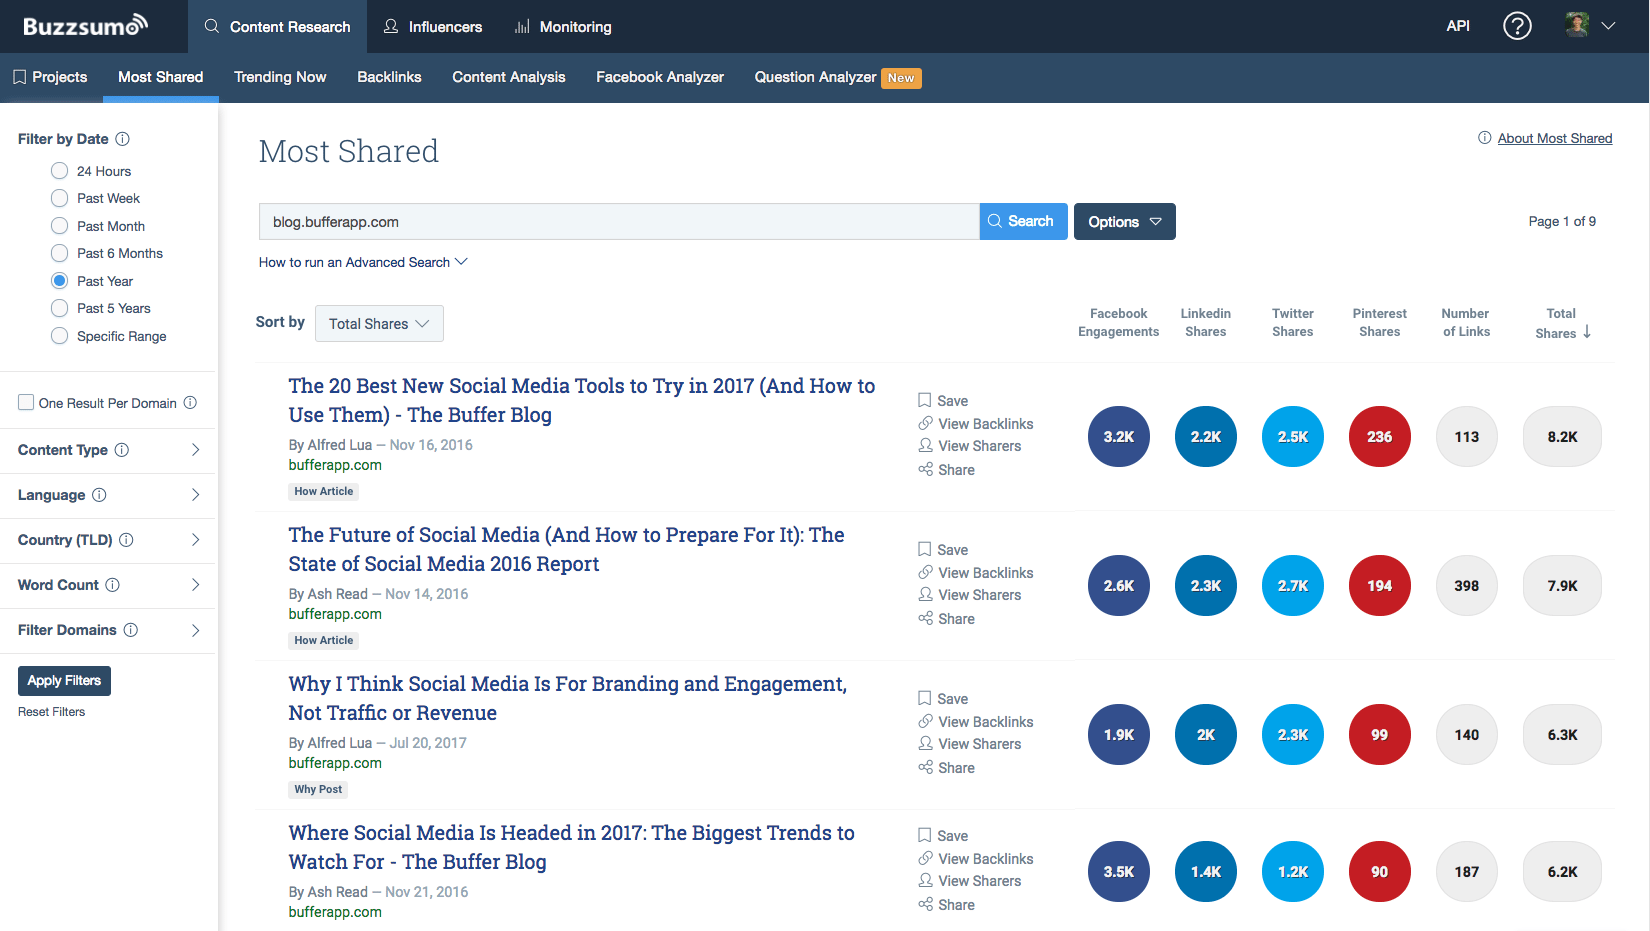 Buzzsumo: Most shared